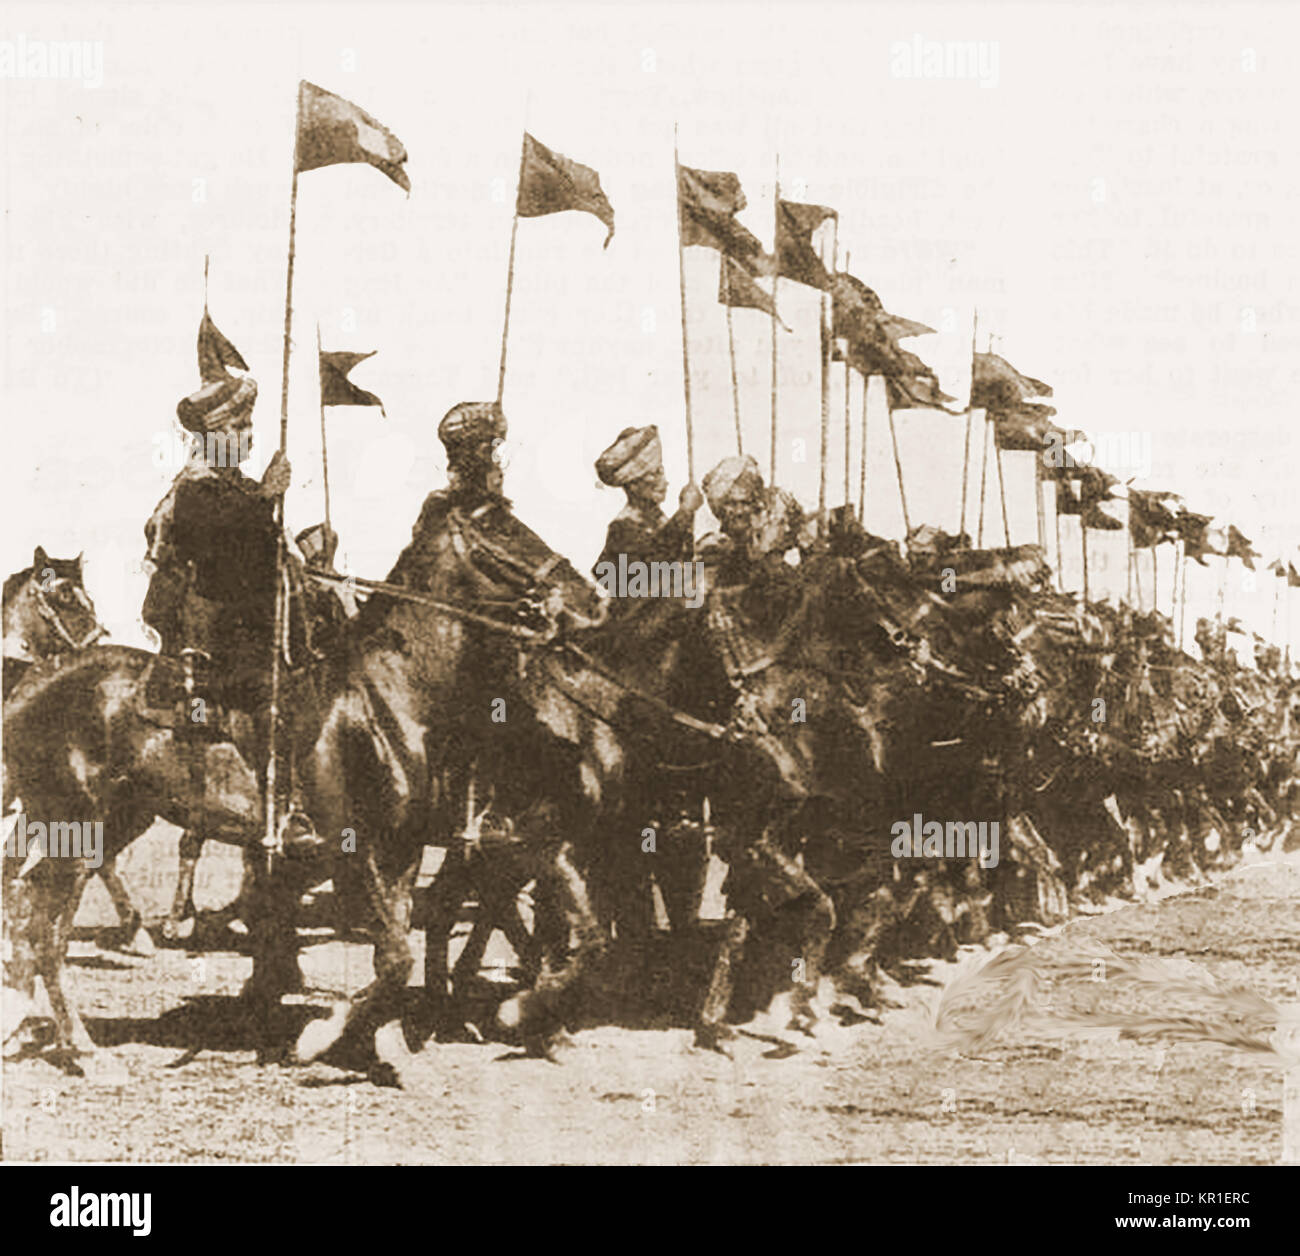 A Magazine printed photograph showing a band of Indian mounted cavalry troops supporting the British army in  the - Stock Image